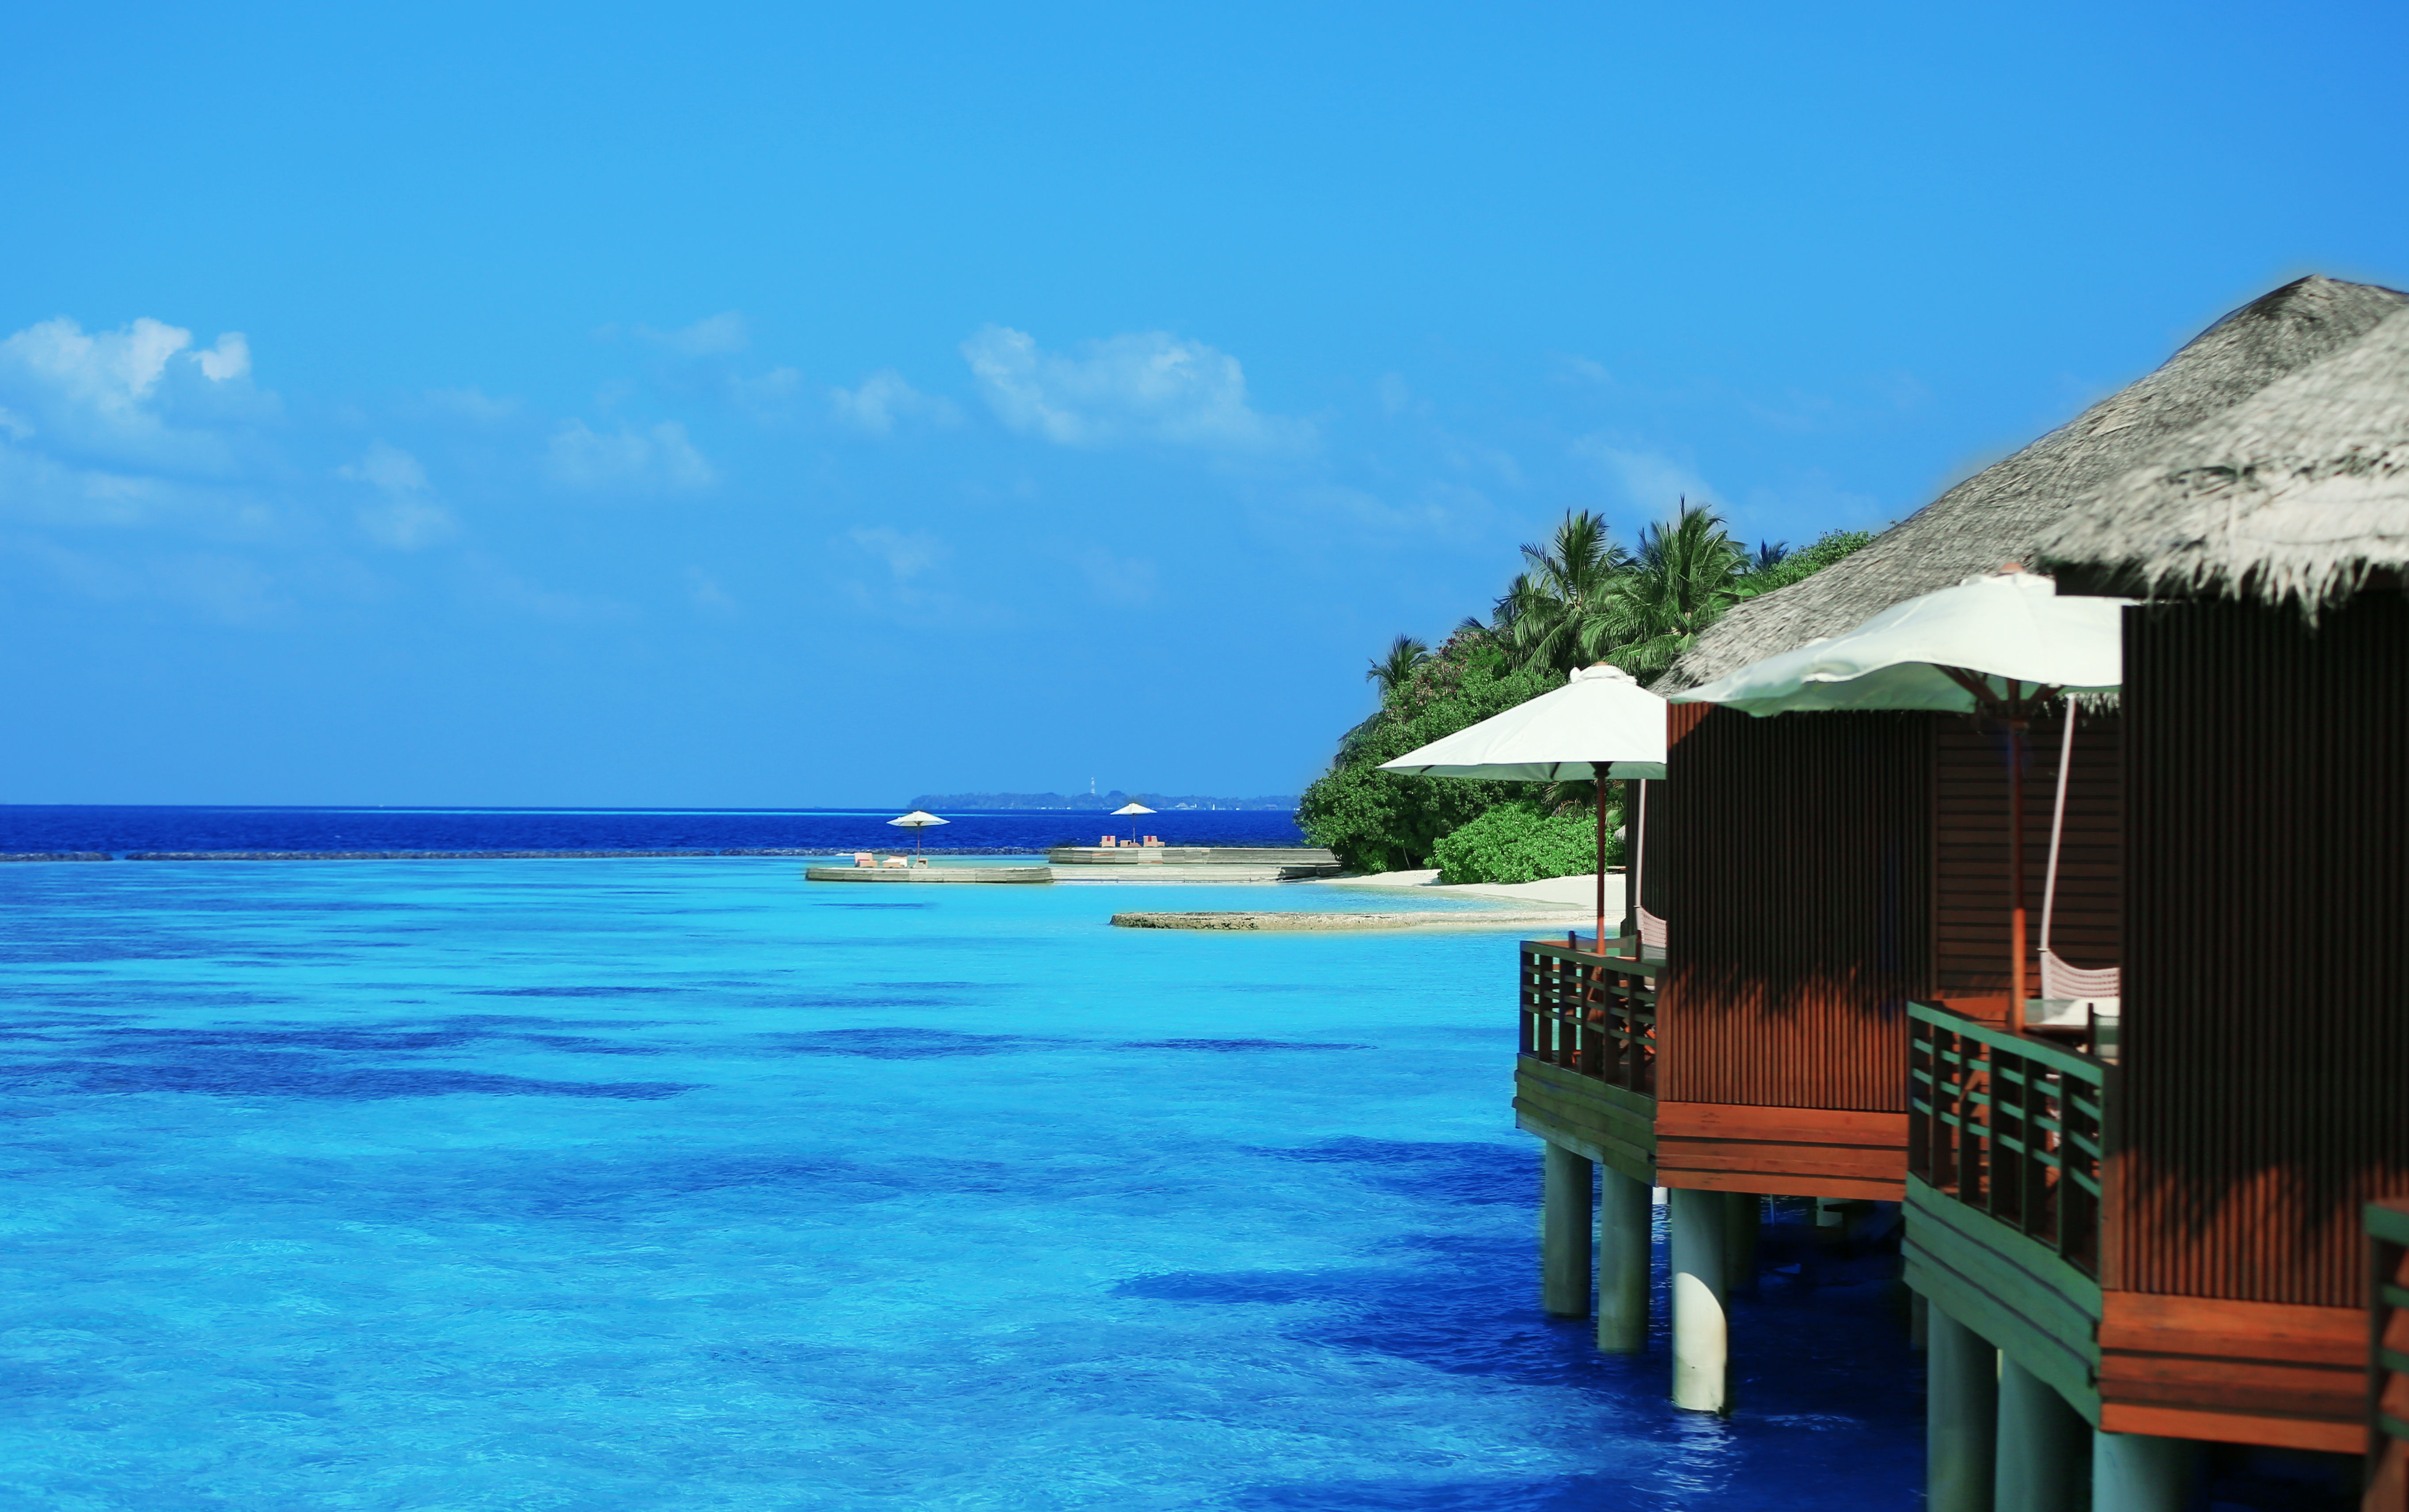 Water villas on crystal clear turquoise ocean in South Central Asia with blue sky background.